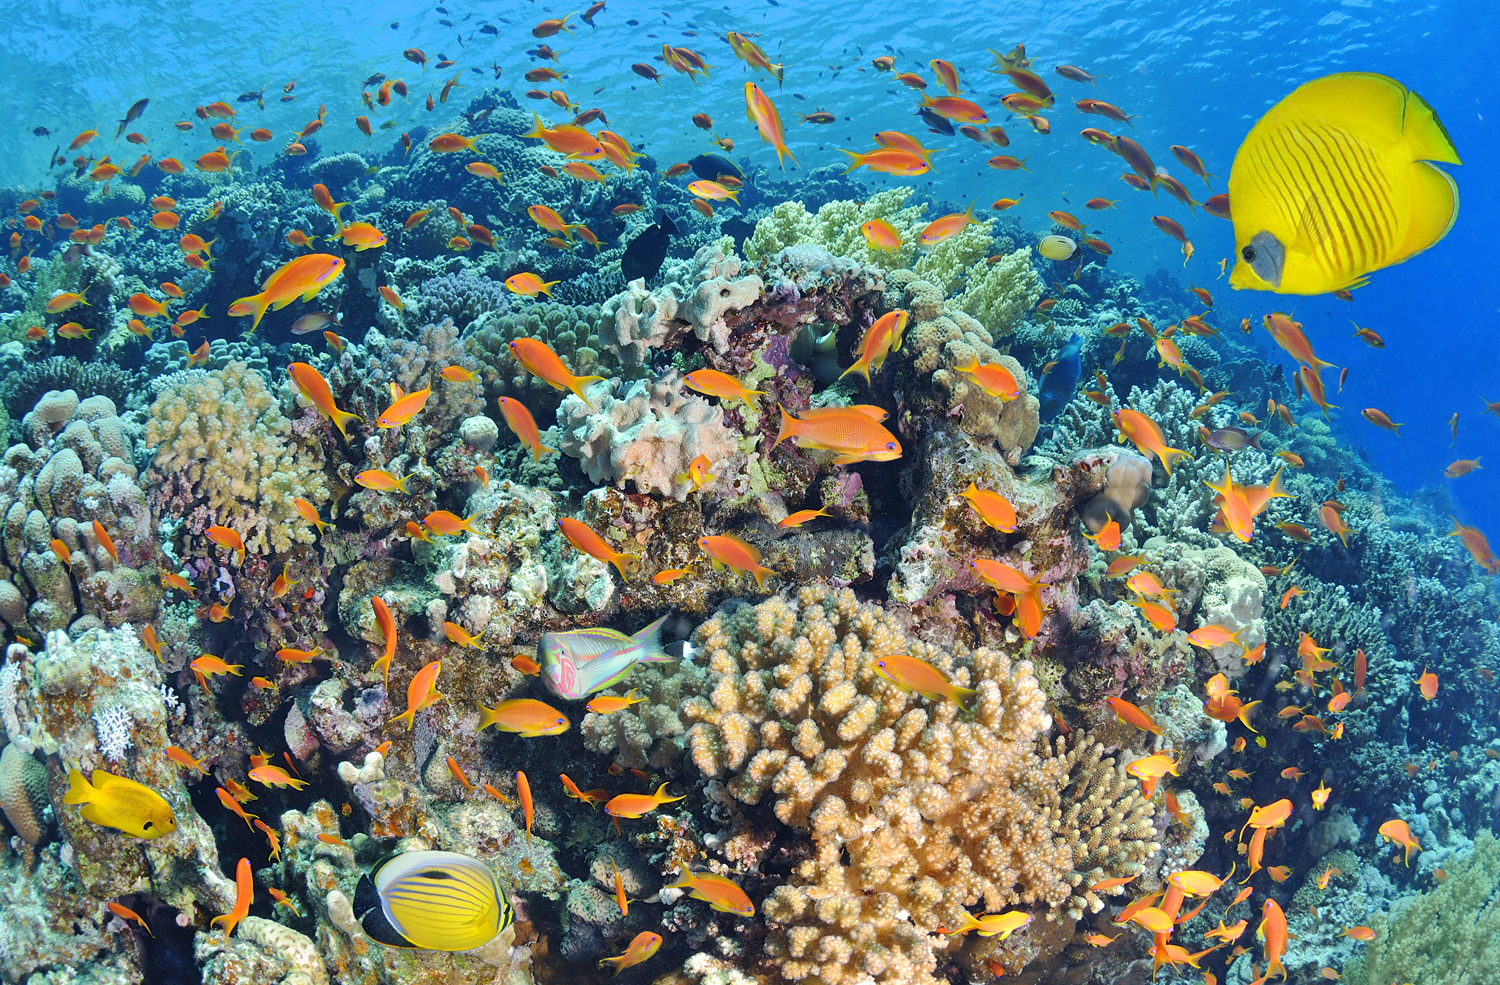 Egypte, mer Rouge, un récif corallien // Egypt, Red Sea, a coral reef